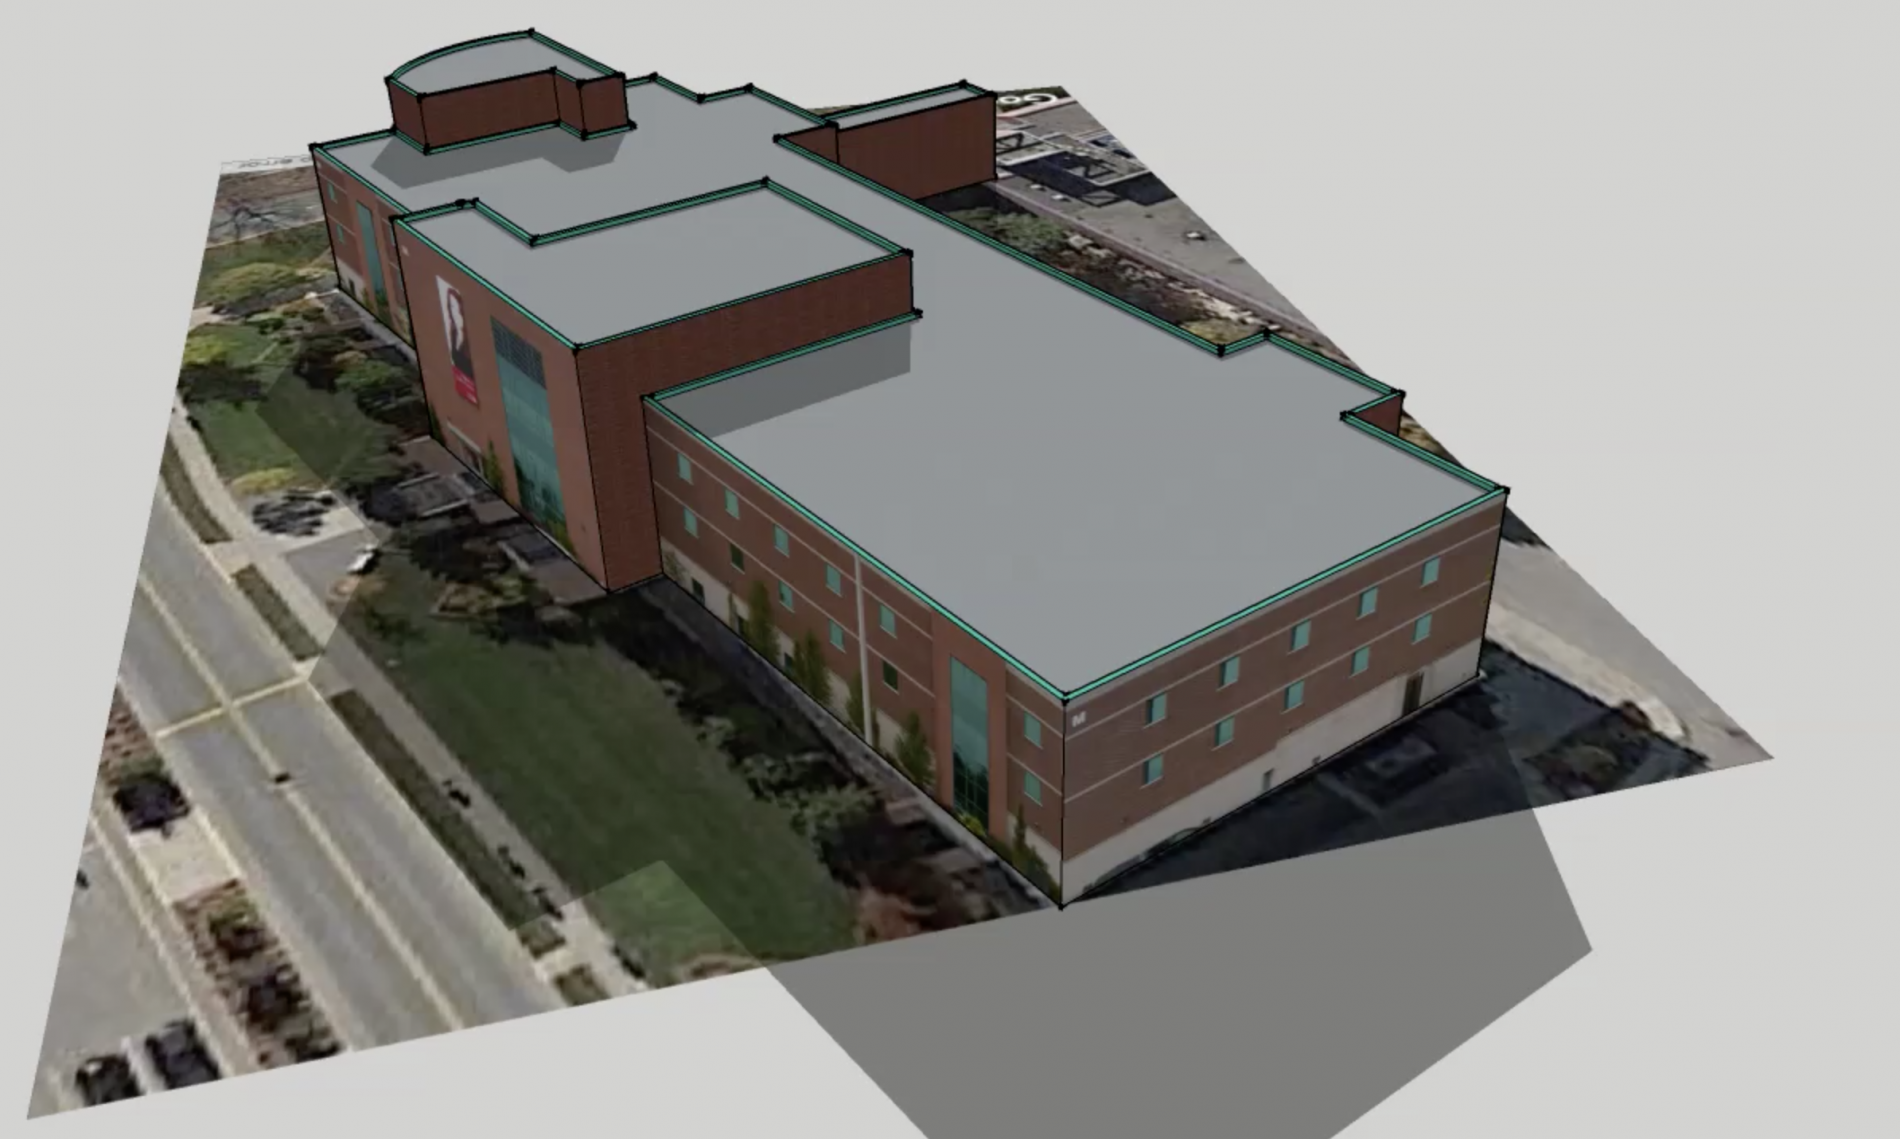 Render M-Building, Fanshawe College